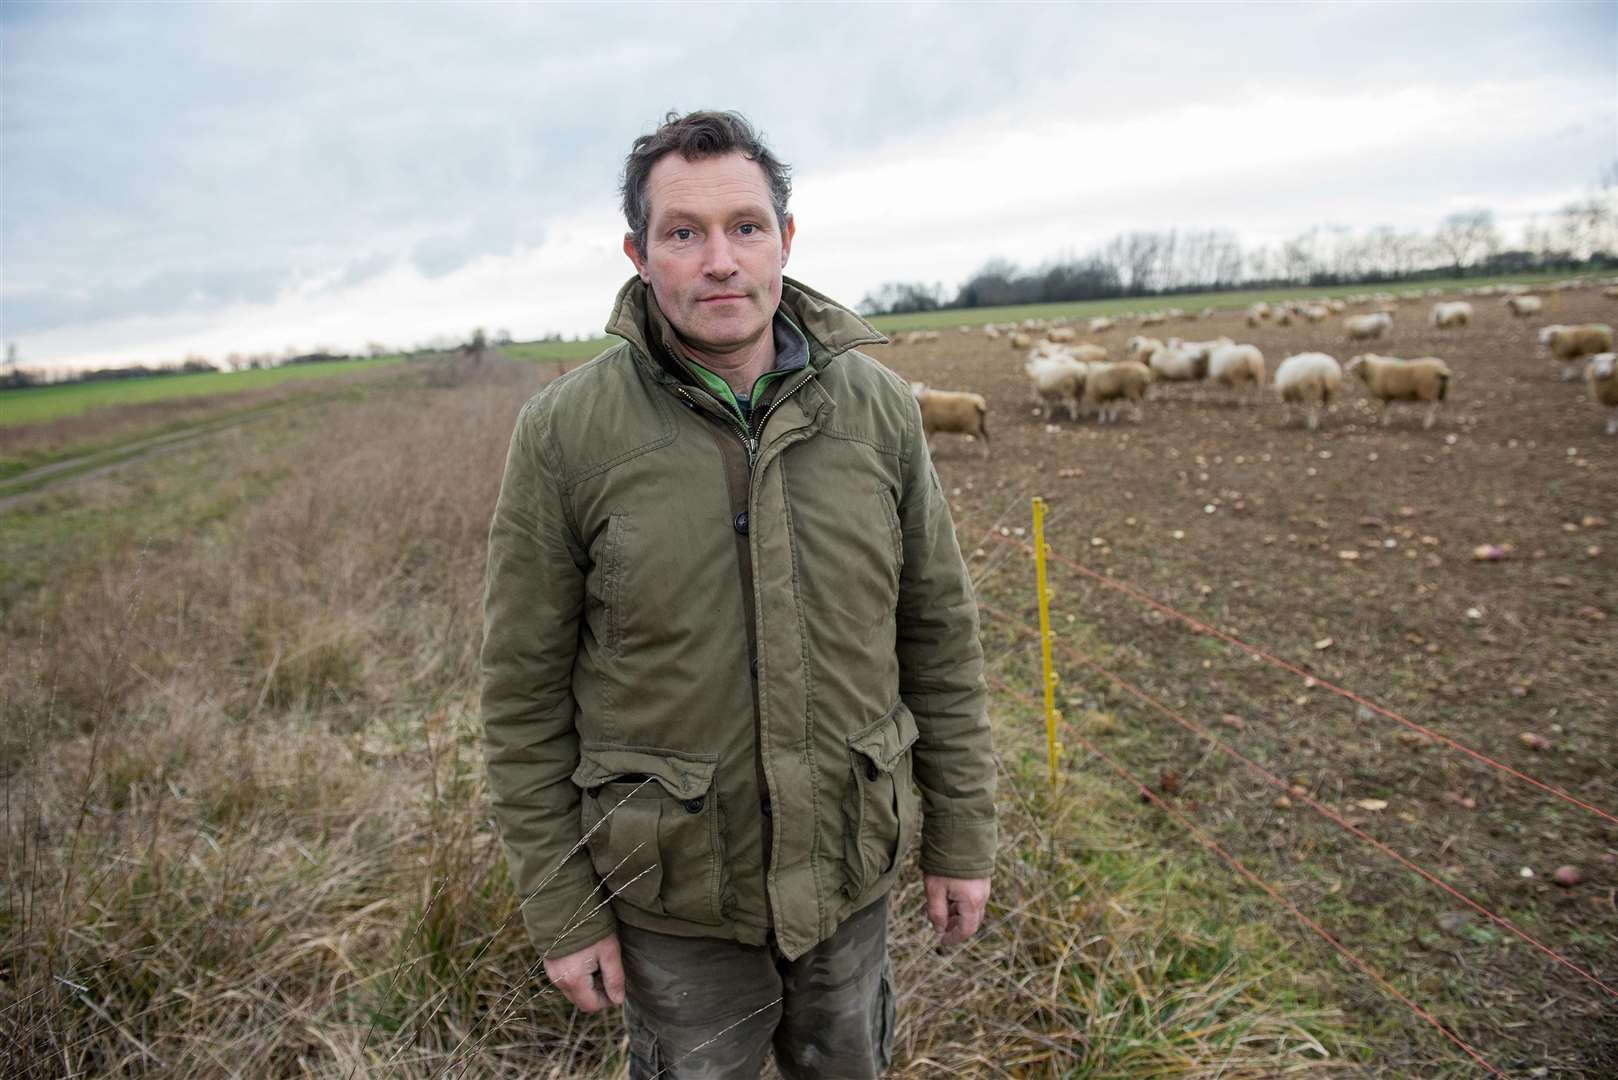 ACTON: Dog attack at farm..Acton farmer Jamie Gregory is urgently appealing for dog walkers to keep their pets on a leash when near livestock, after one of his sheep was seriously injured after being attacked by a dog that had gotten onto his farmland. Picture by Mark Westley. (6827609)